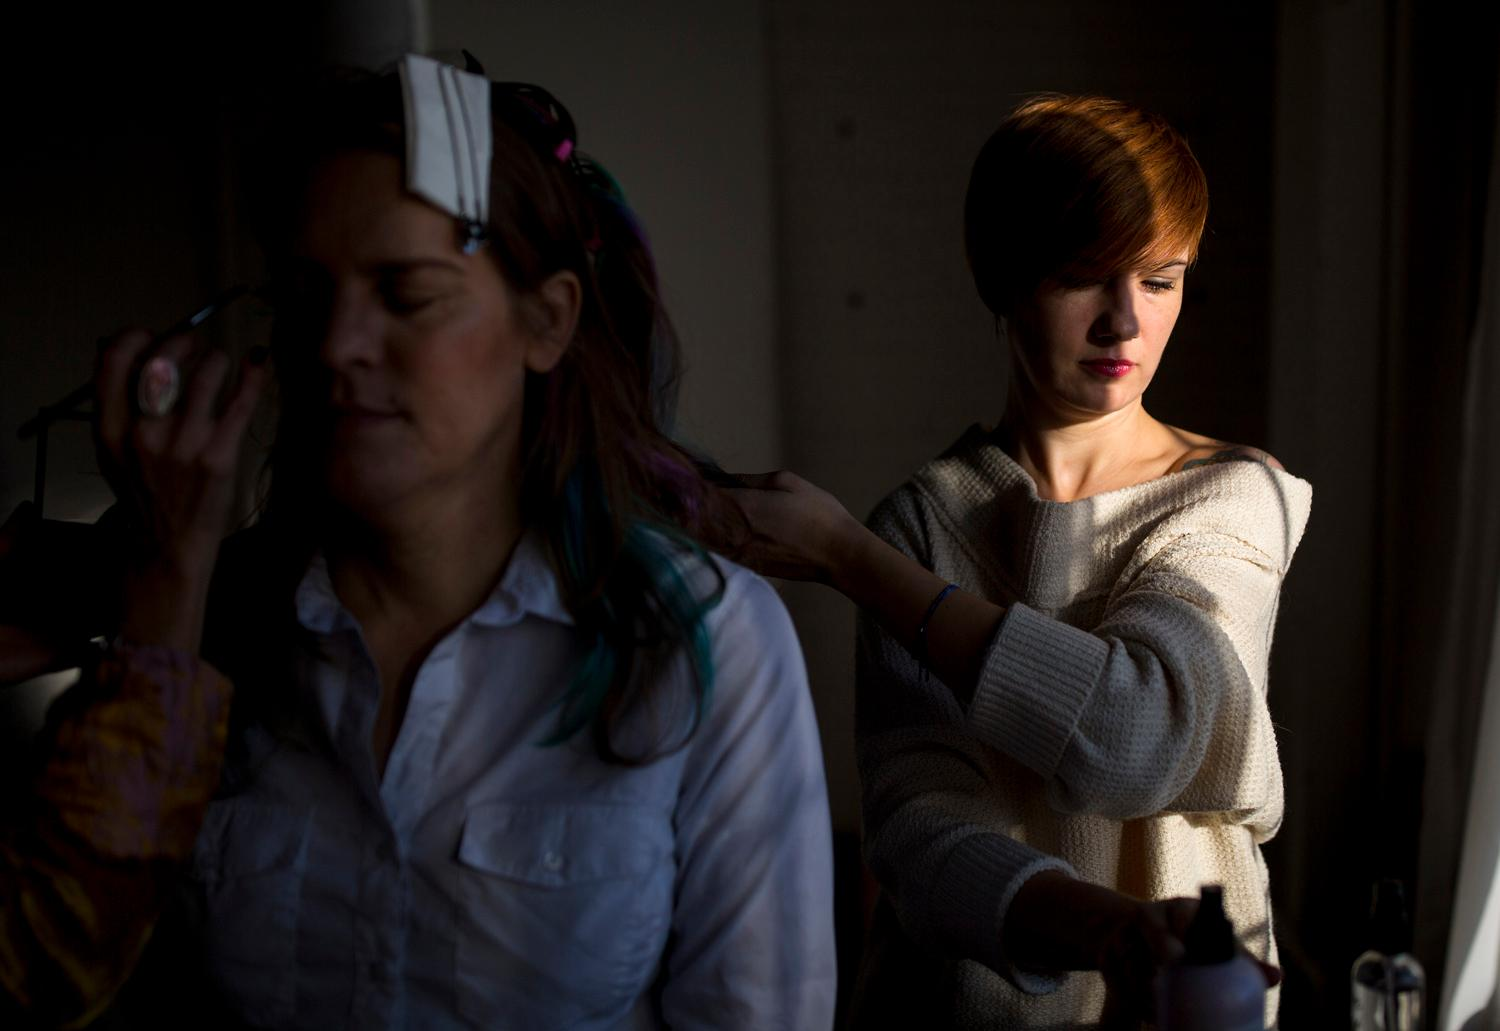 Hair stylist Julia Durfee works on Monika Hawkinson's hair as she receives her first professional makeup session at Sorella Photos studio loft in SODO. Hawkinson has been transitioning from male to female for the past three years. (Sy Bean / Seattle Refined)